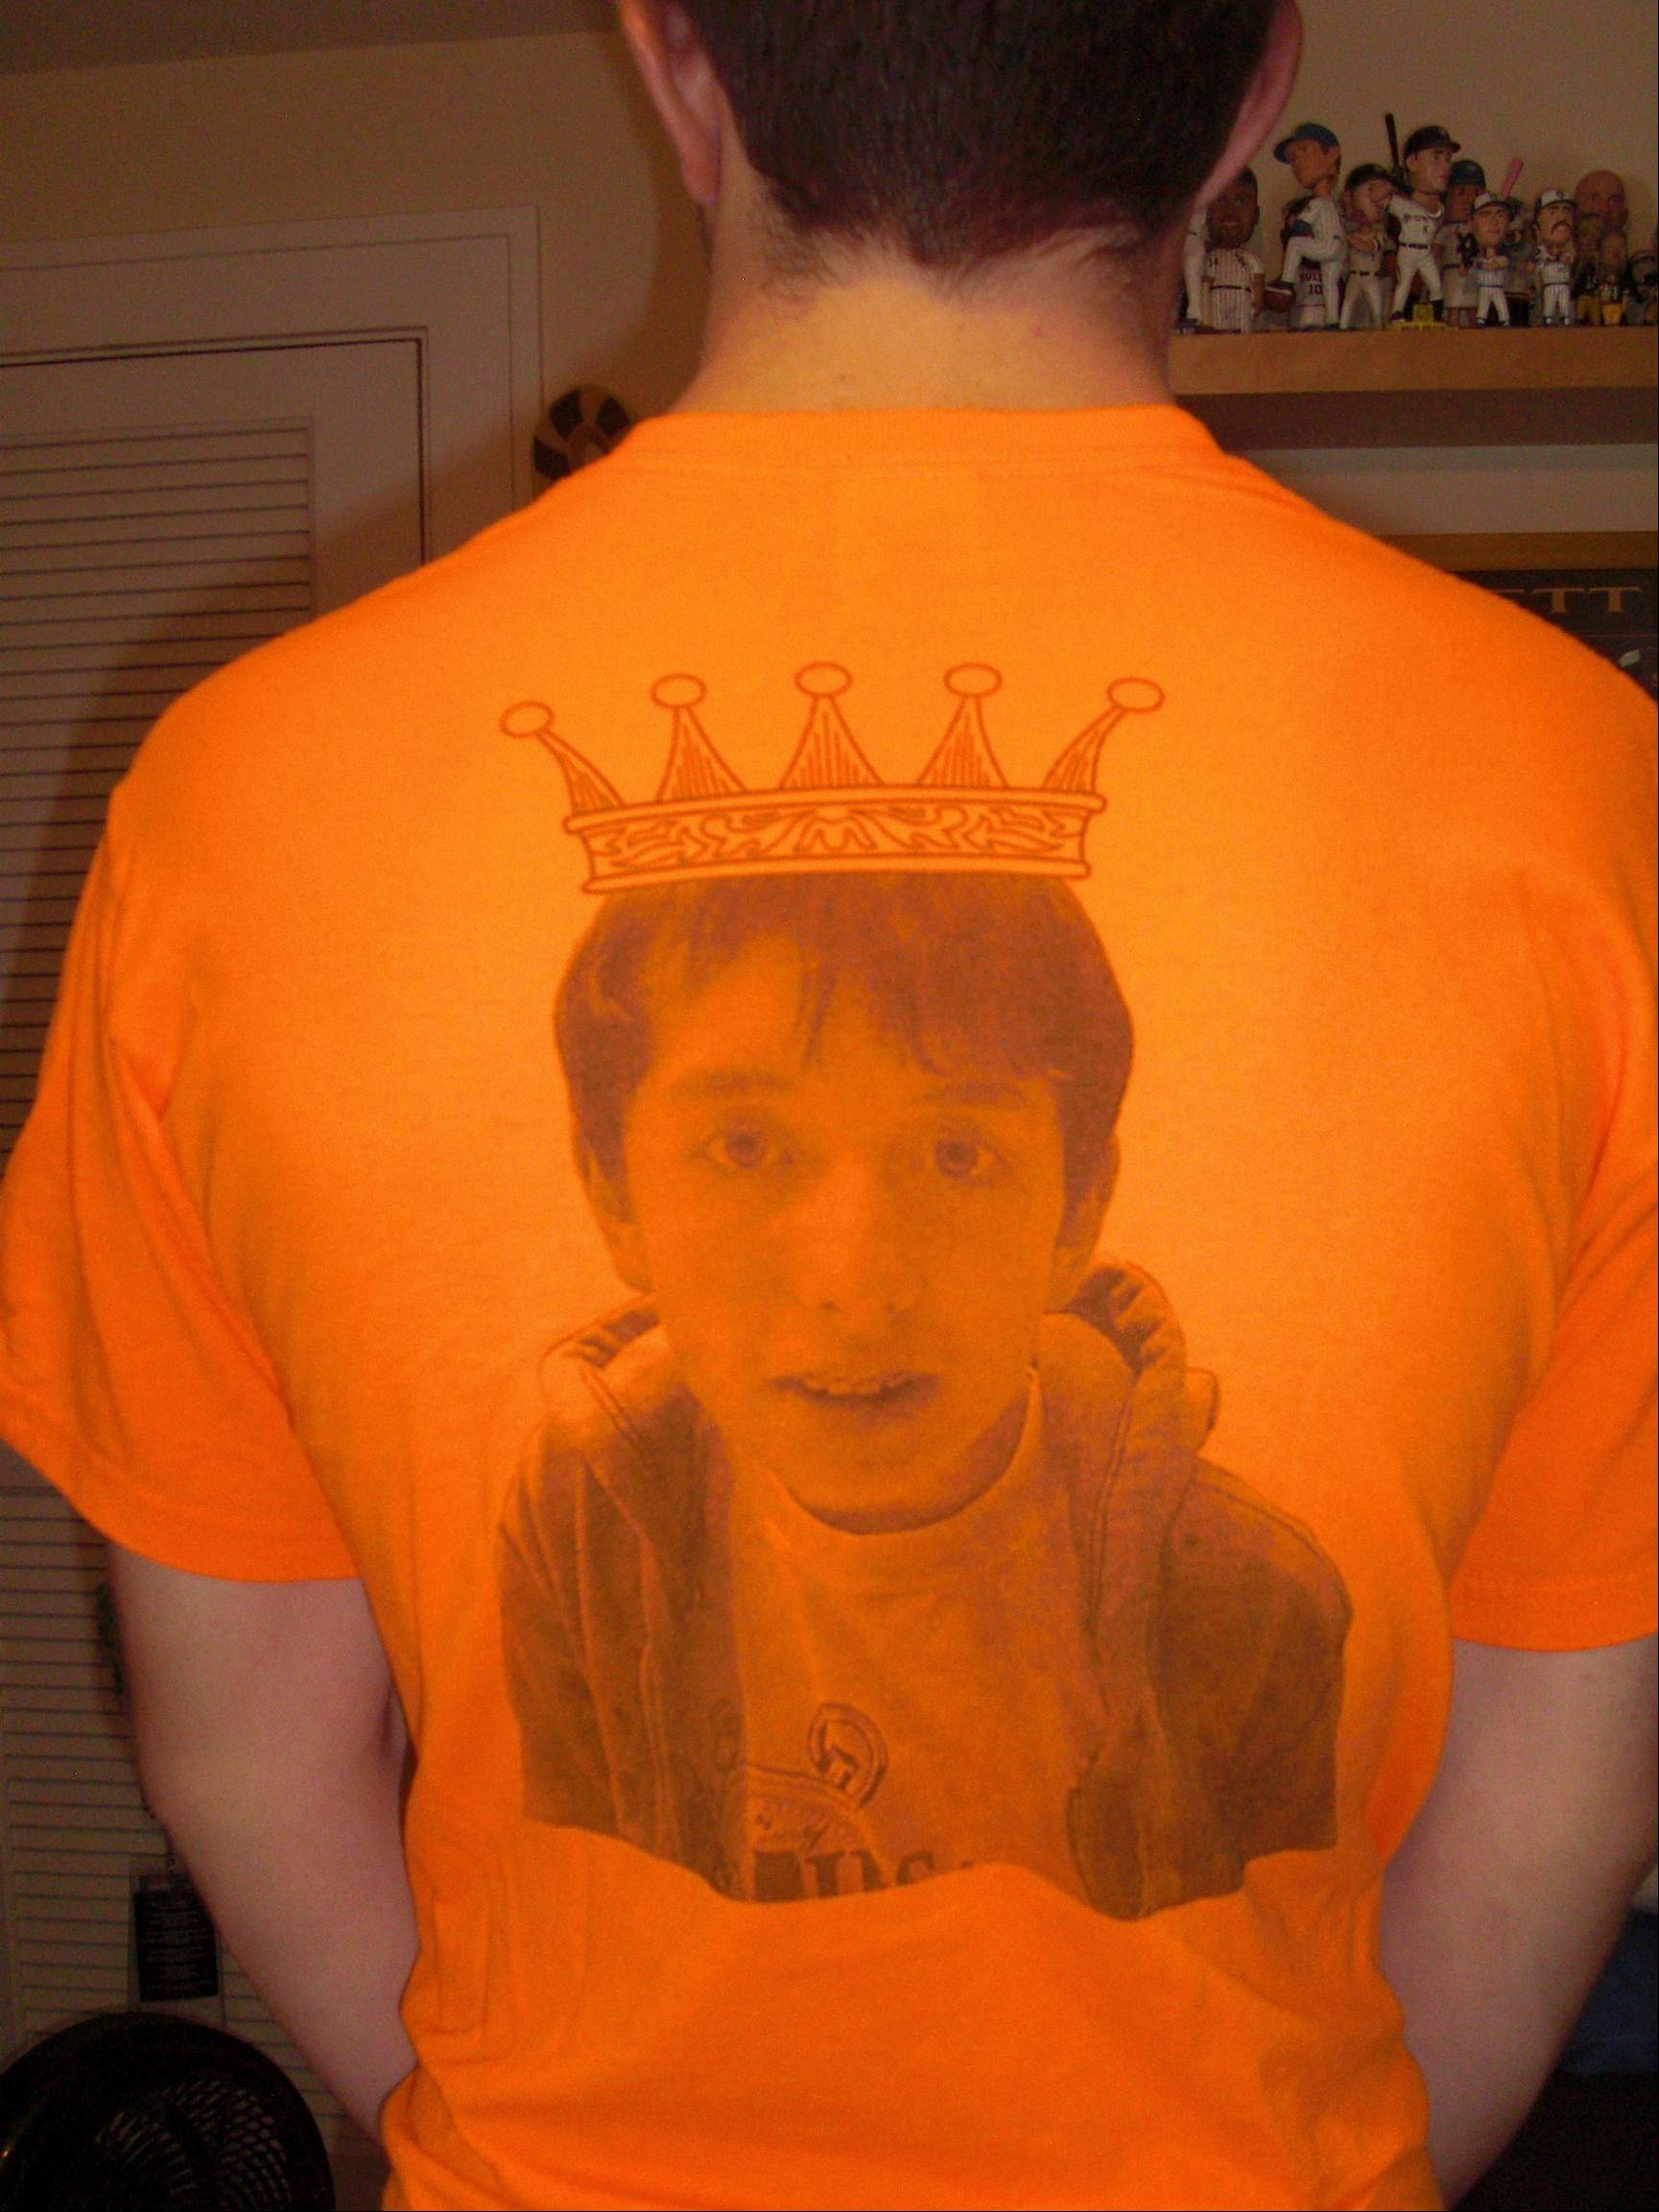 Joe Sessions' best friend, Austin Menzia, sold 200 T-shirts to Hersey High School students to support his bid for Homecoming King. One side of the shirt features a younger Joe with a Photoshopped crown on his head.